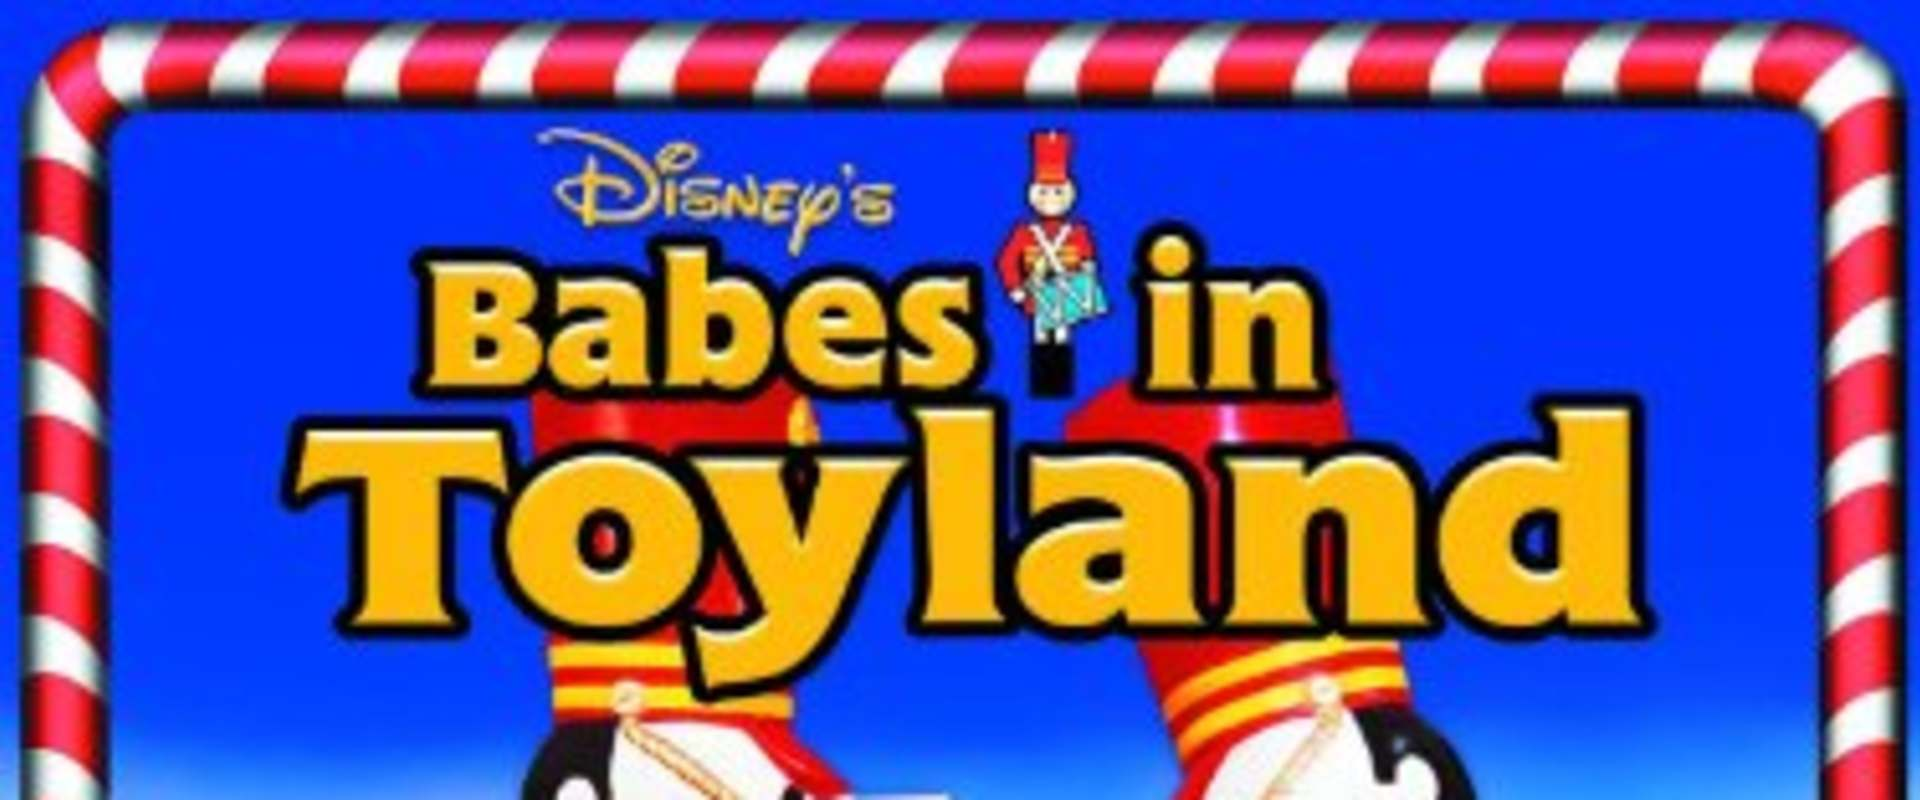 Babes in Toyland background 1